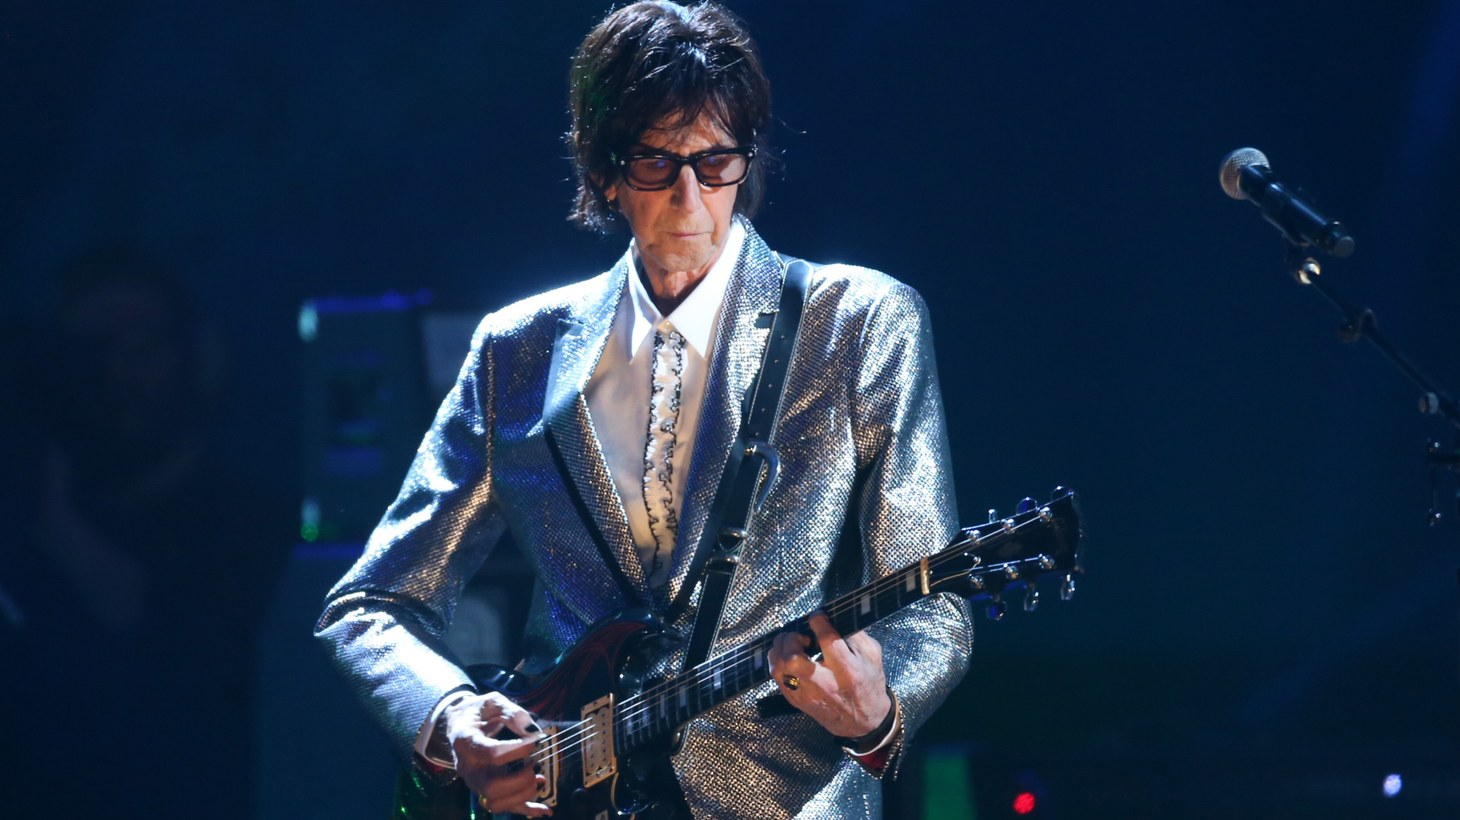 Rock & Roll Hall of Fame Induction – Show - Cleveland, Ohio, U.S., 14/04/2018 – Ric Ocasek of The Cars performs on stage.